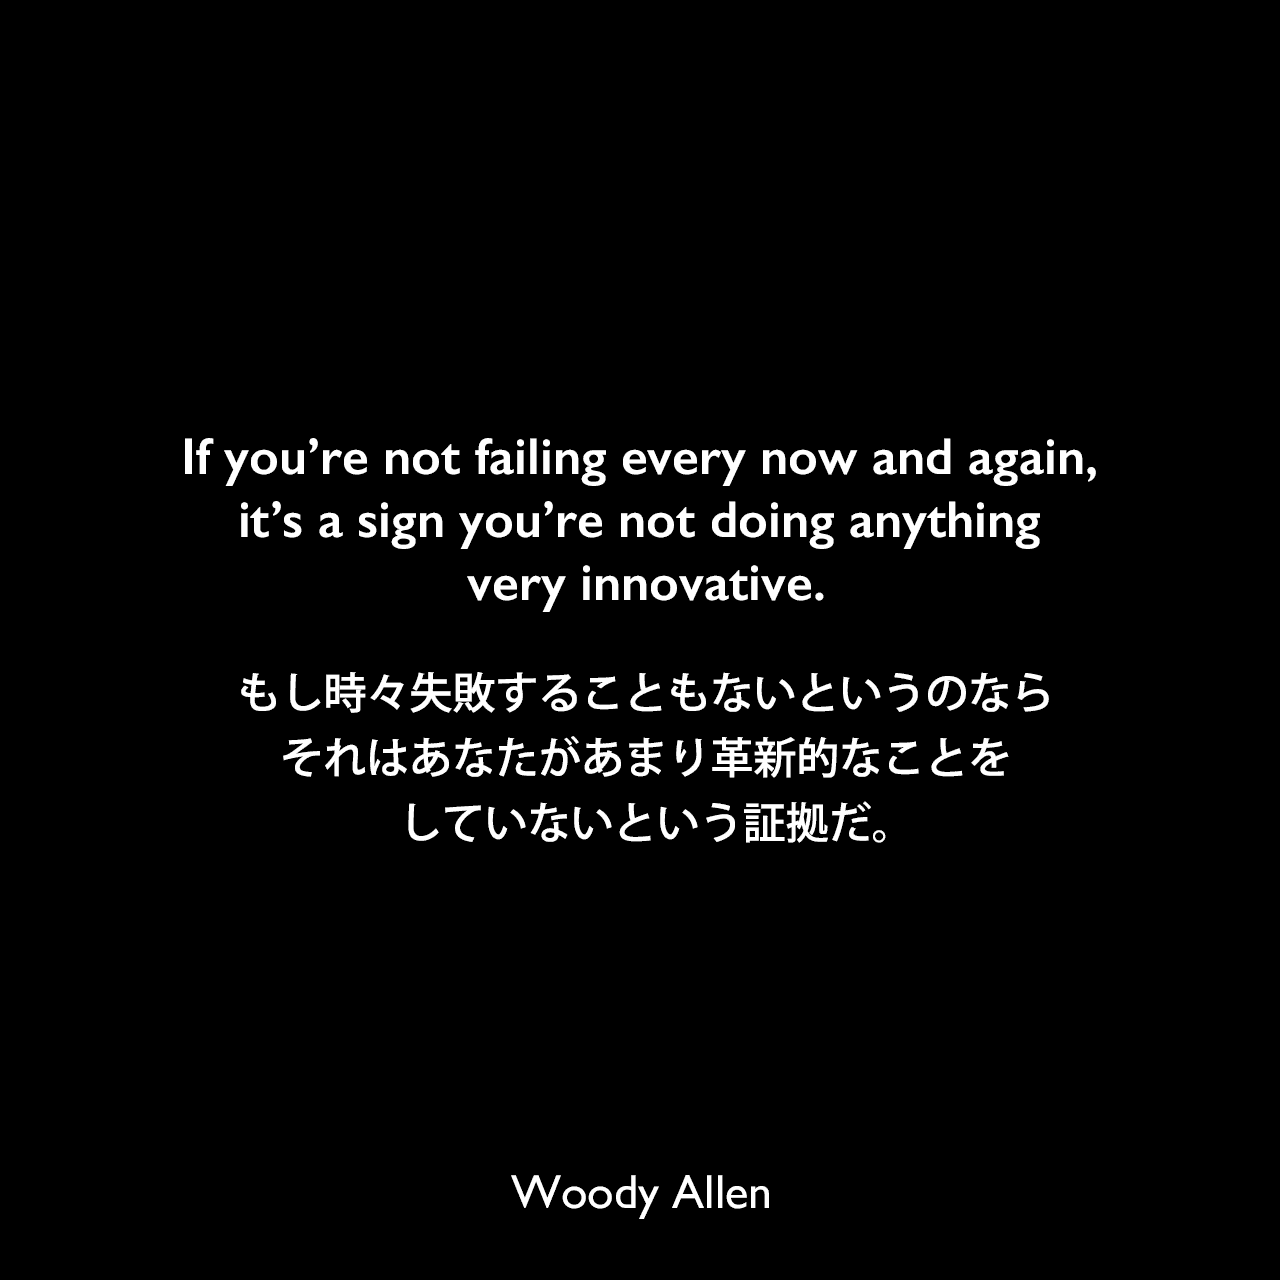 If you're not failing every now and again, it's a sign you're not doing anything very innovative.もし時々失敗することもないというのなら、それはあなたがあまり革新的なことをしていないという証拠だ。Woody Allen